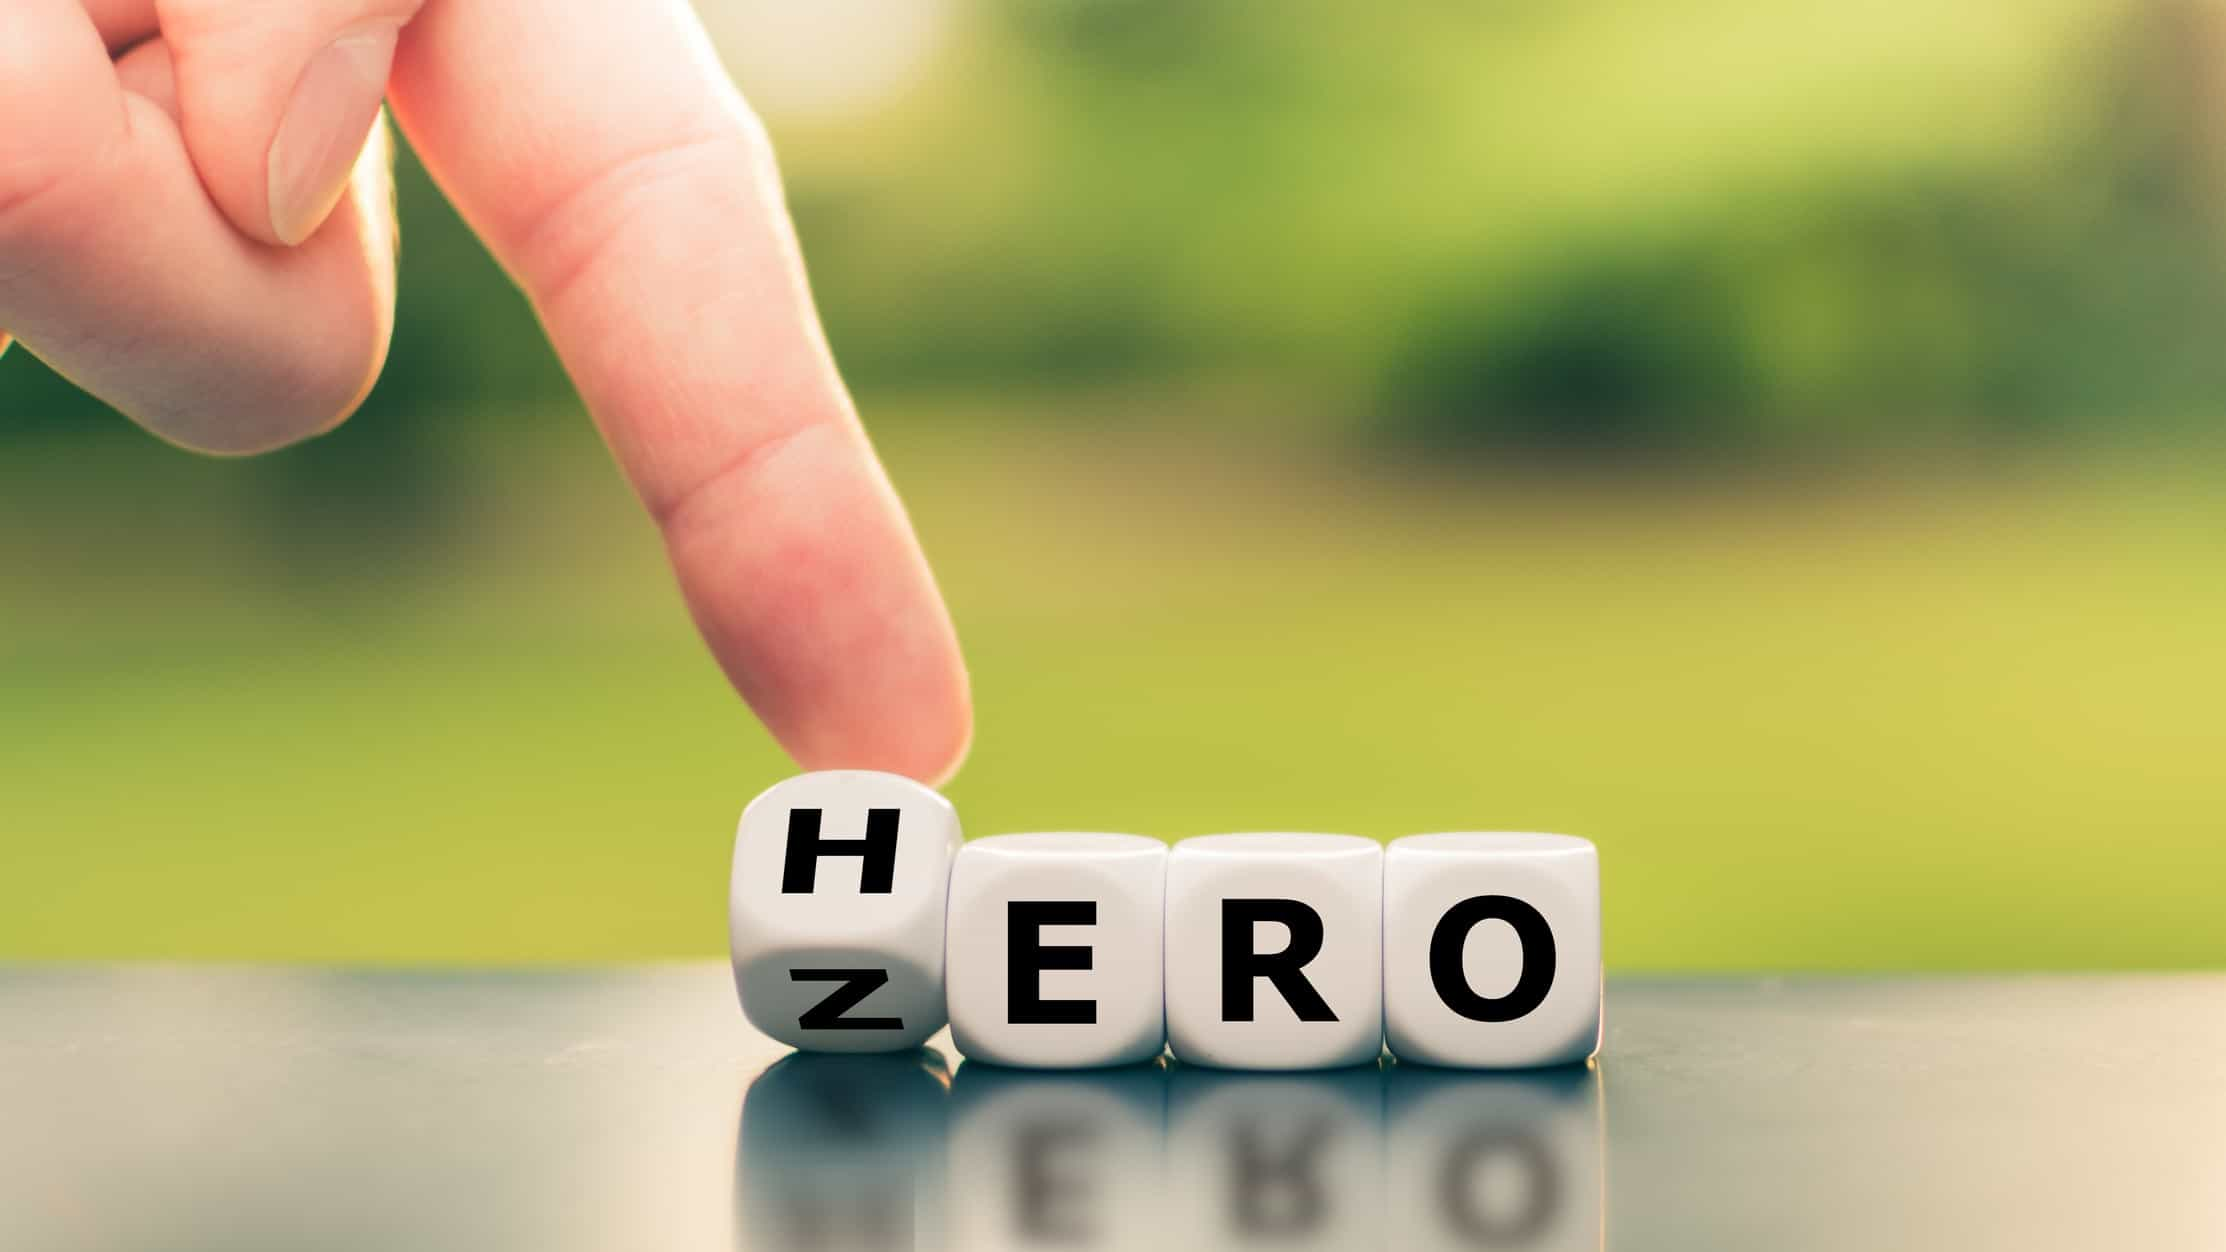 A finger switches the letters on some blocks between zero and hero